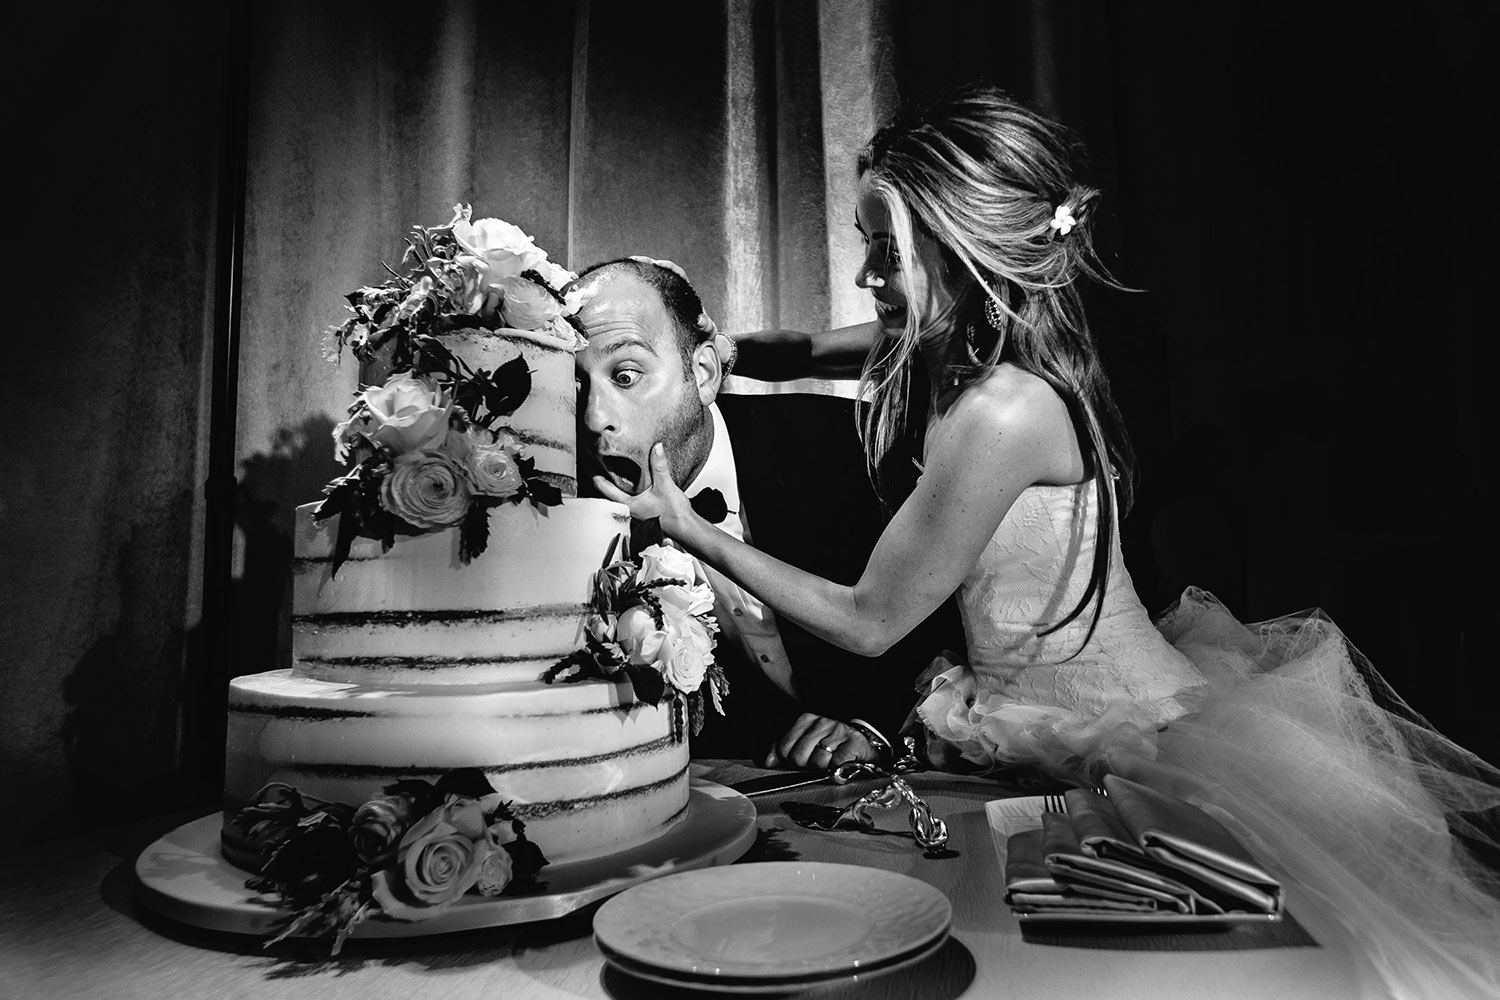 Funny bride forcing groom to take bite of cake, by Calloway Gable